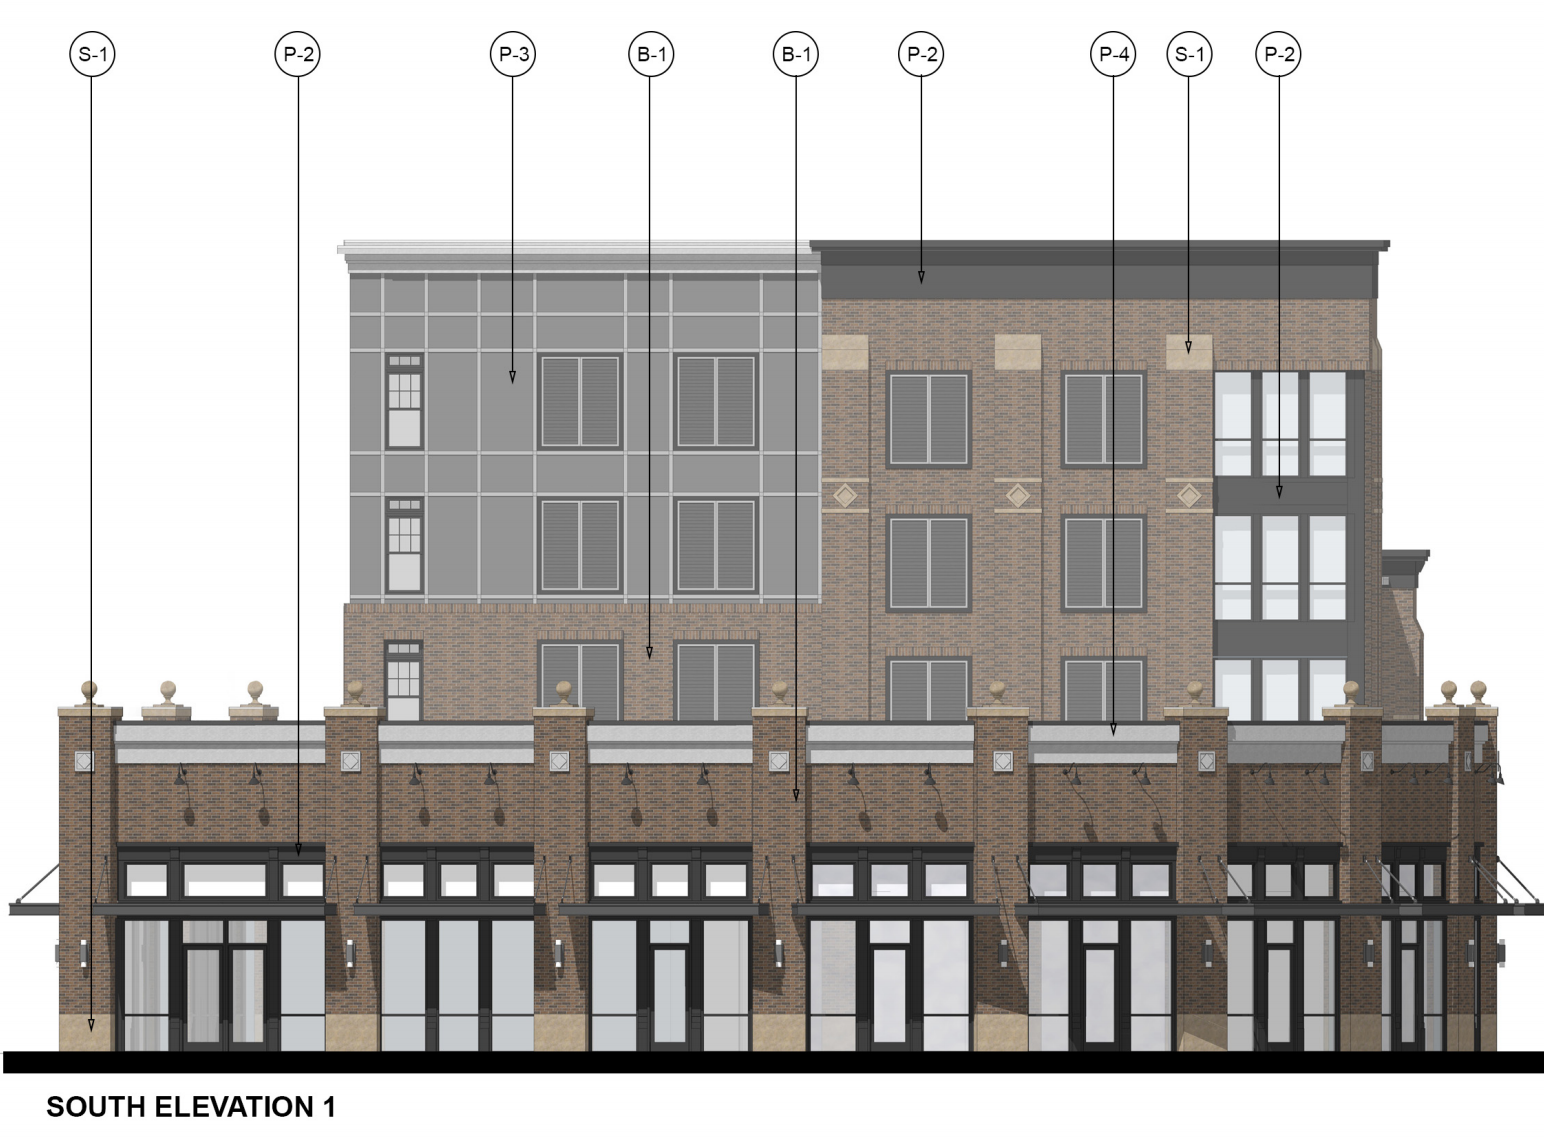 a rendering of the south side of the apartment building